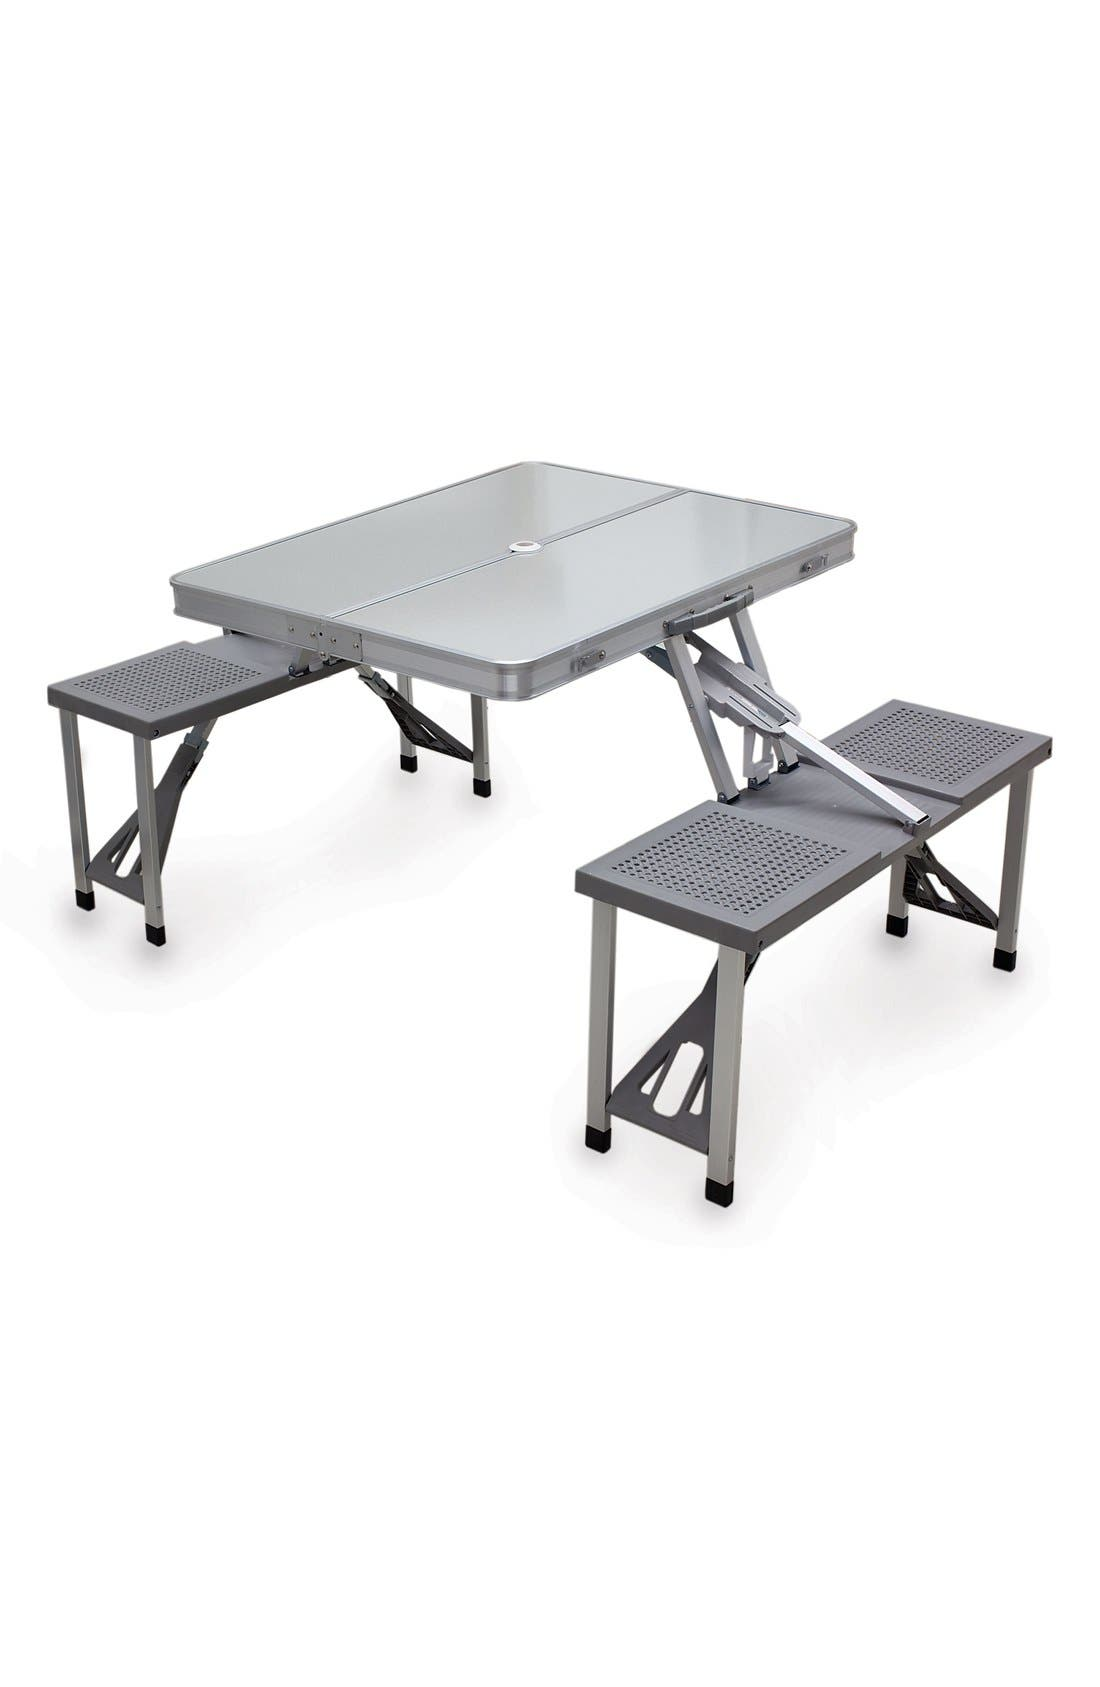 Alternate Image 1 Selected - Picnic Time Fold-Up Aluminum Picnic Table